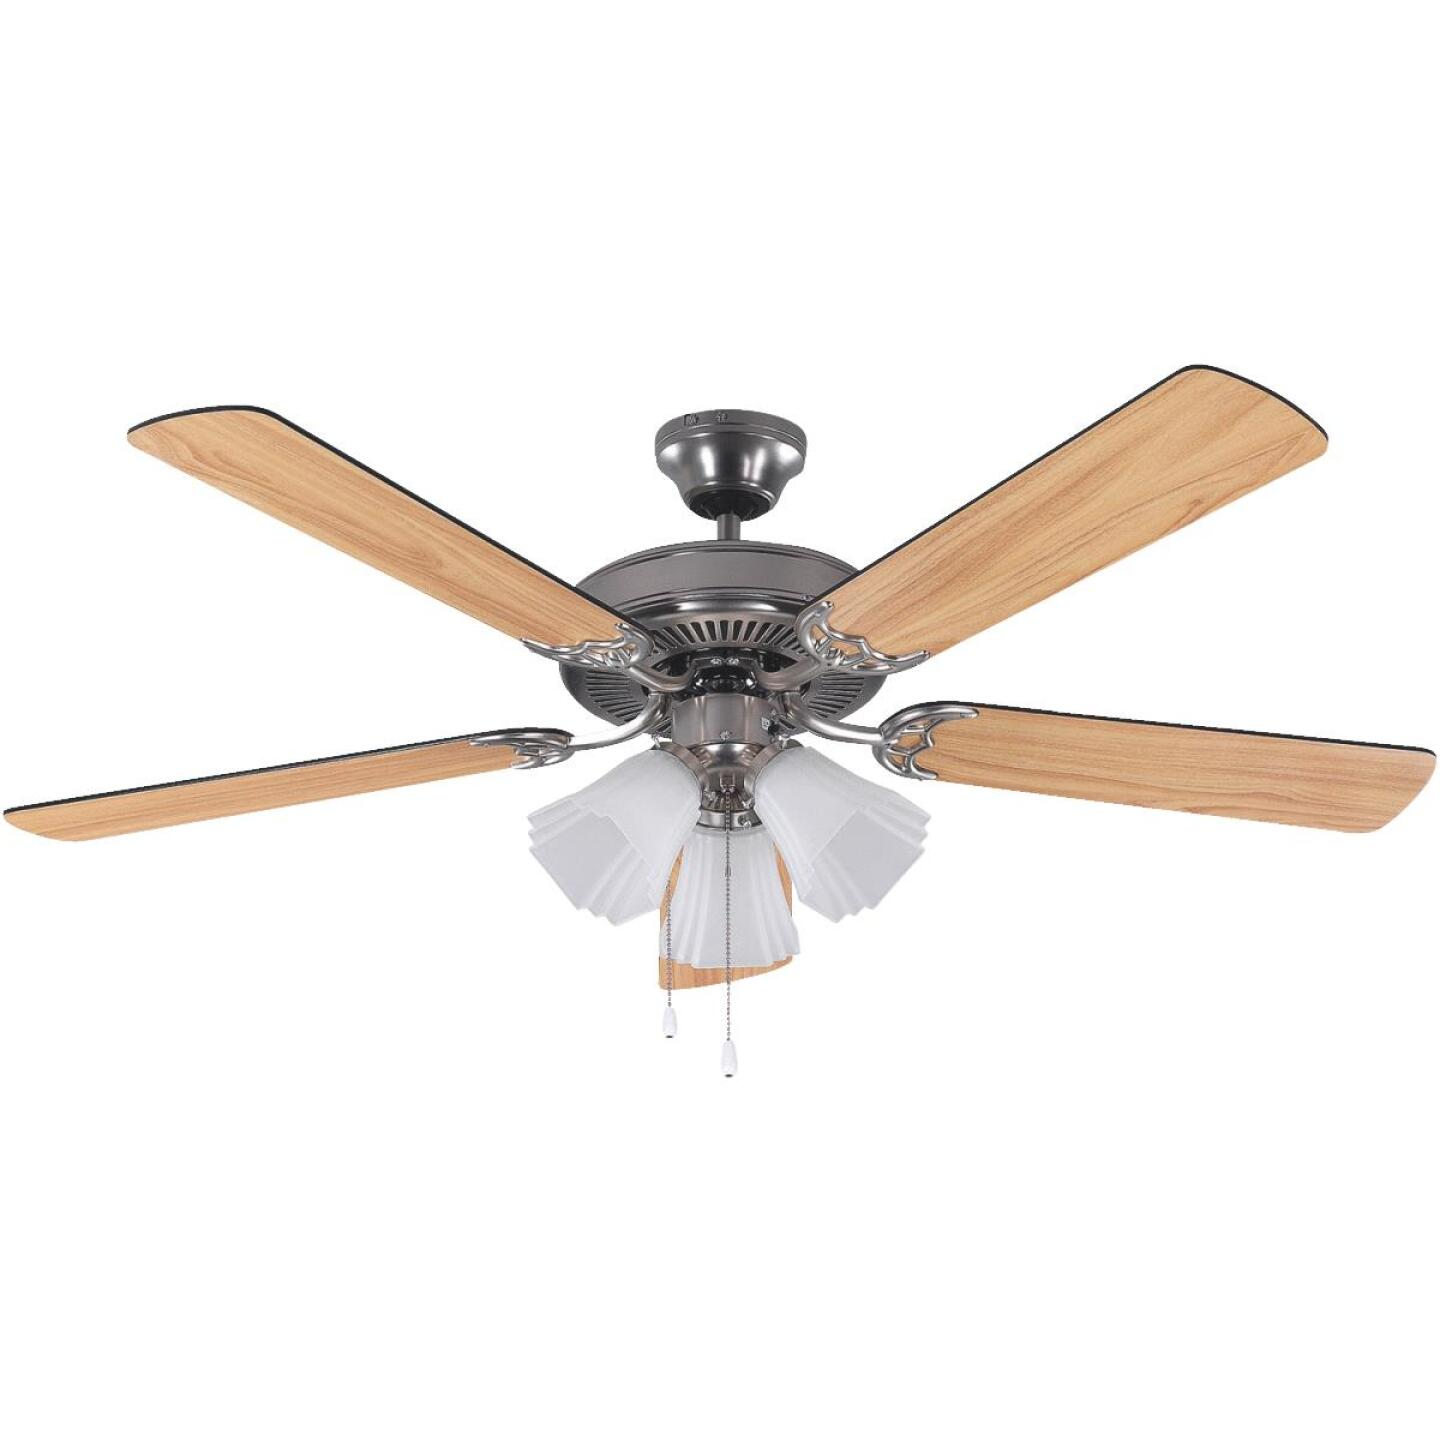 Home Impressions Sherwood 52 In. Brushed Nickel Ceiling Fan with Light Kit Image 1